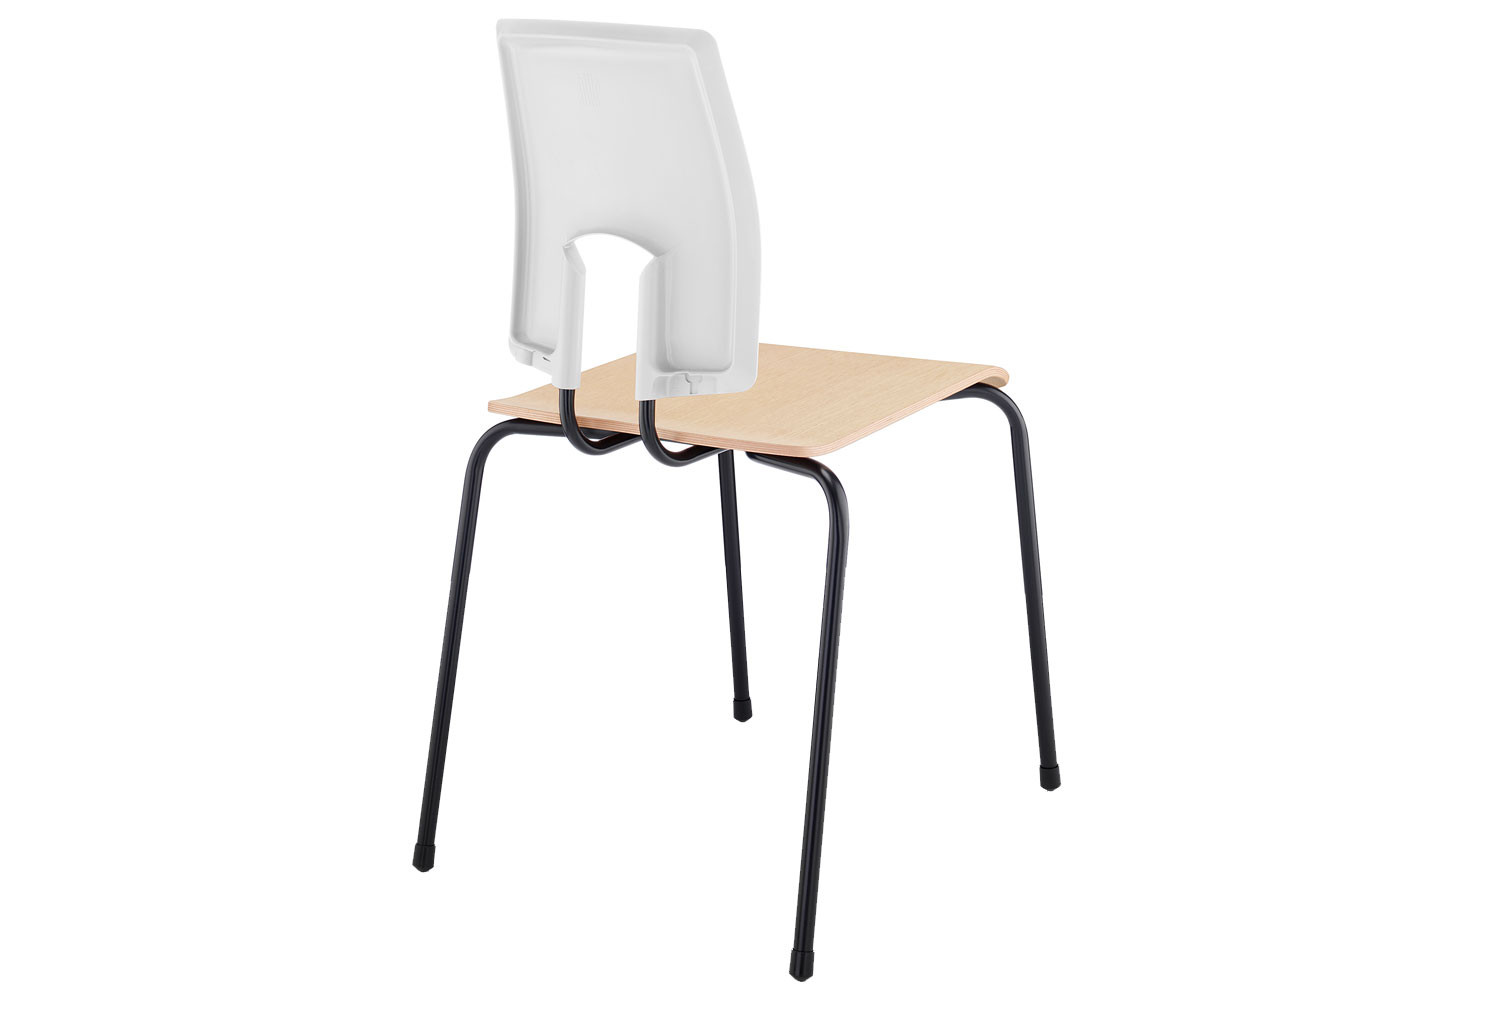 Hille SE Ergonomic Classroom Chair With Wooden Seat